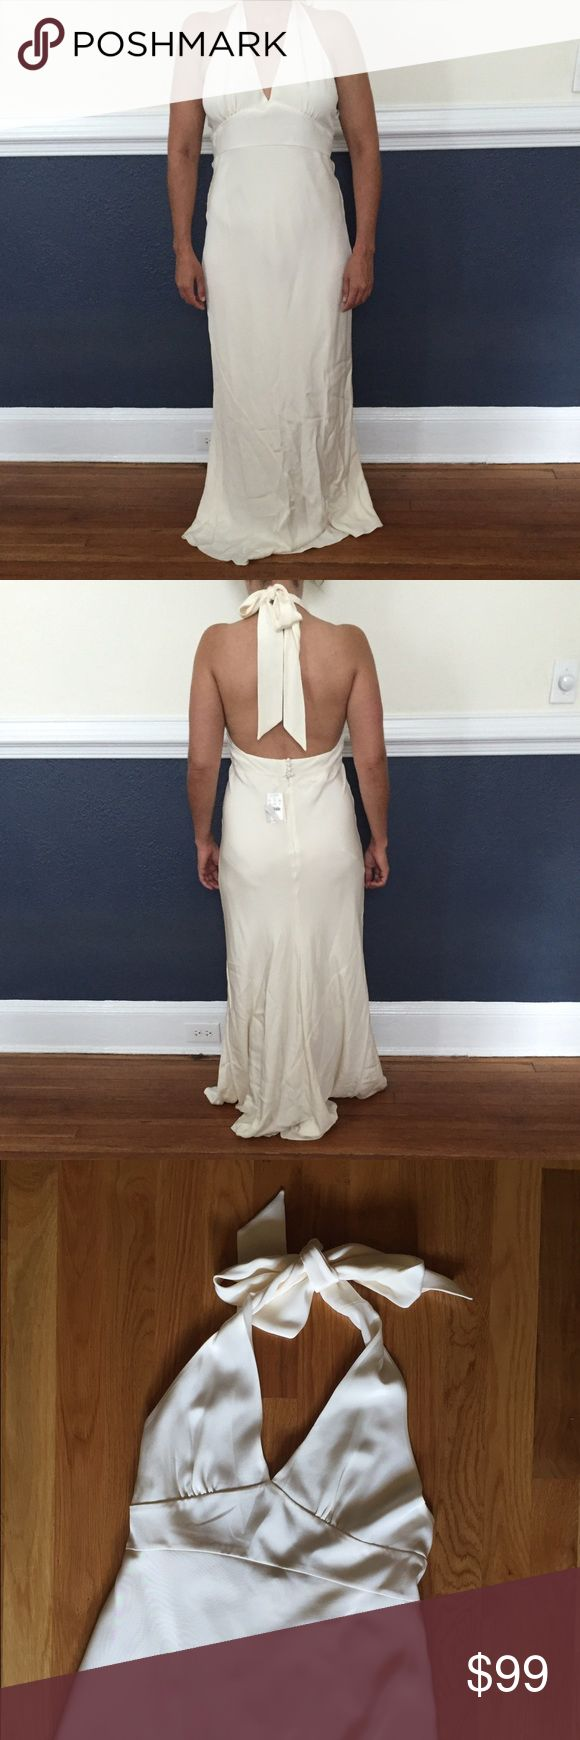 J. Crew halter top wedding dress Gorgeous J. Crew halter top wedding dress in lined ivory silk. Purchased at outlet sale; NWT. (Has been stored in a dust bag so the bottom is quite wrinkled - sorry!) J. Crew Dresses Wedding